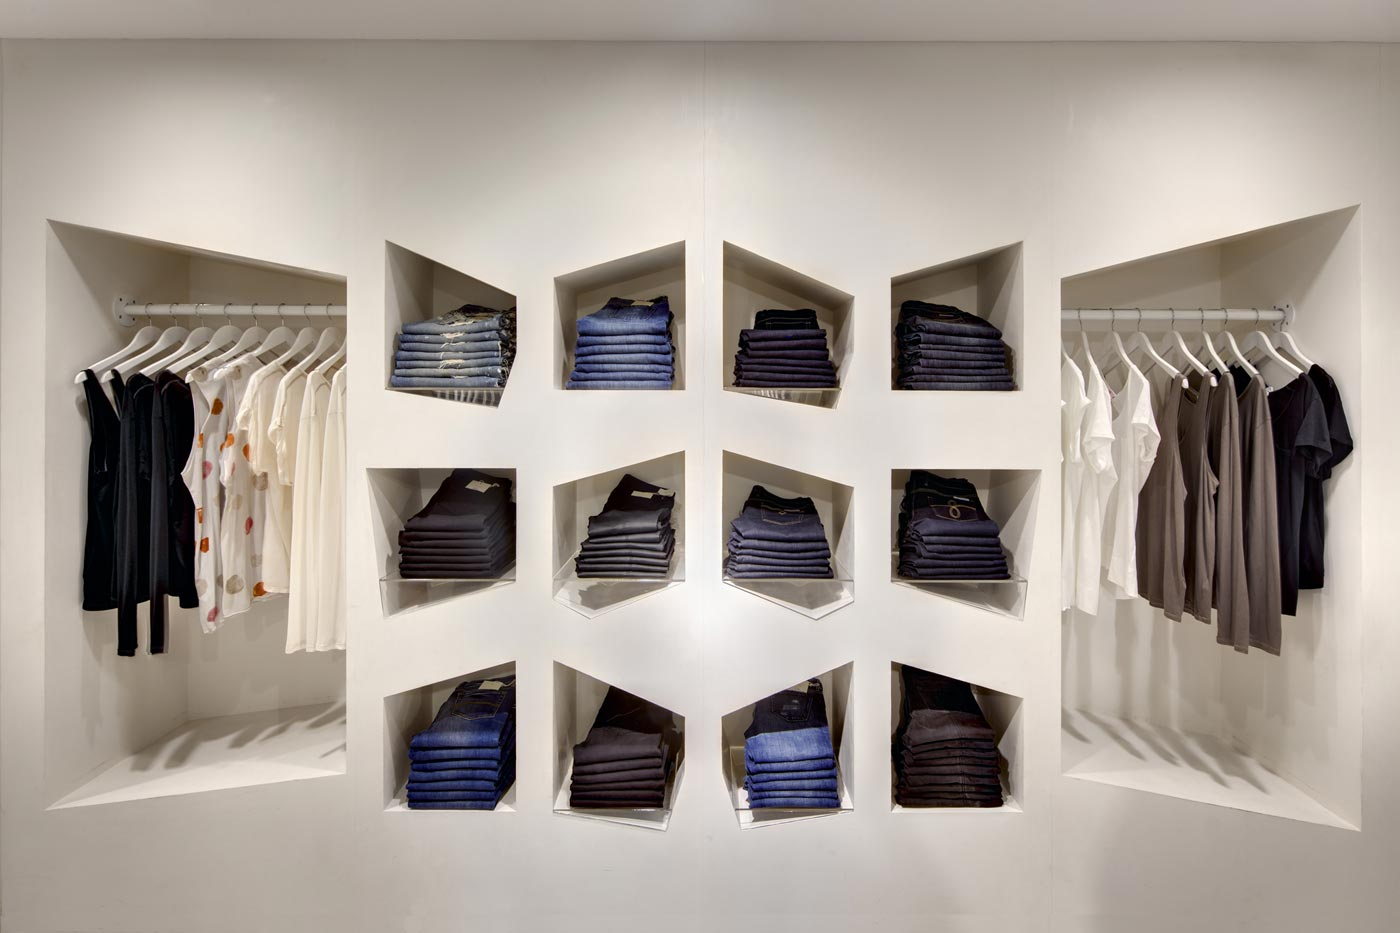 Sass & Bide Store in Australia. Unexpected visual elements respond to emotional and aesthetic demands of customers.